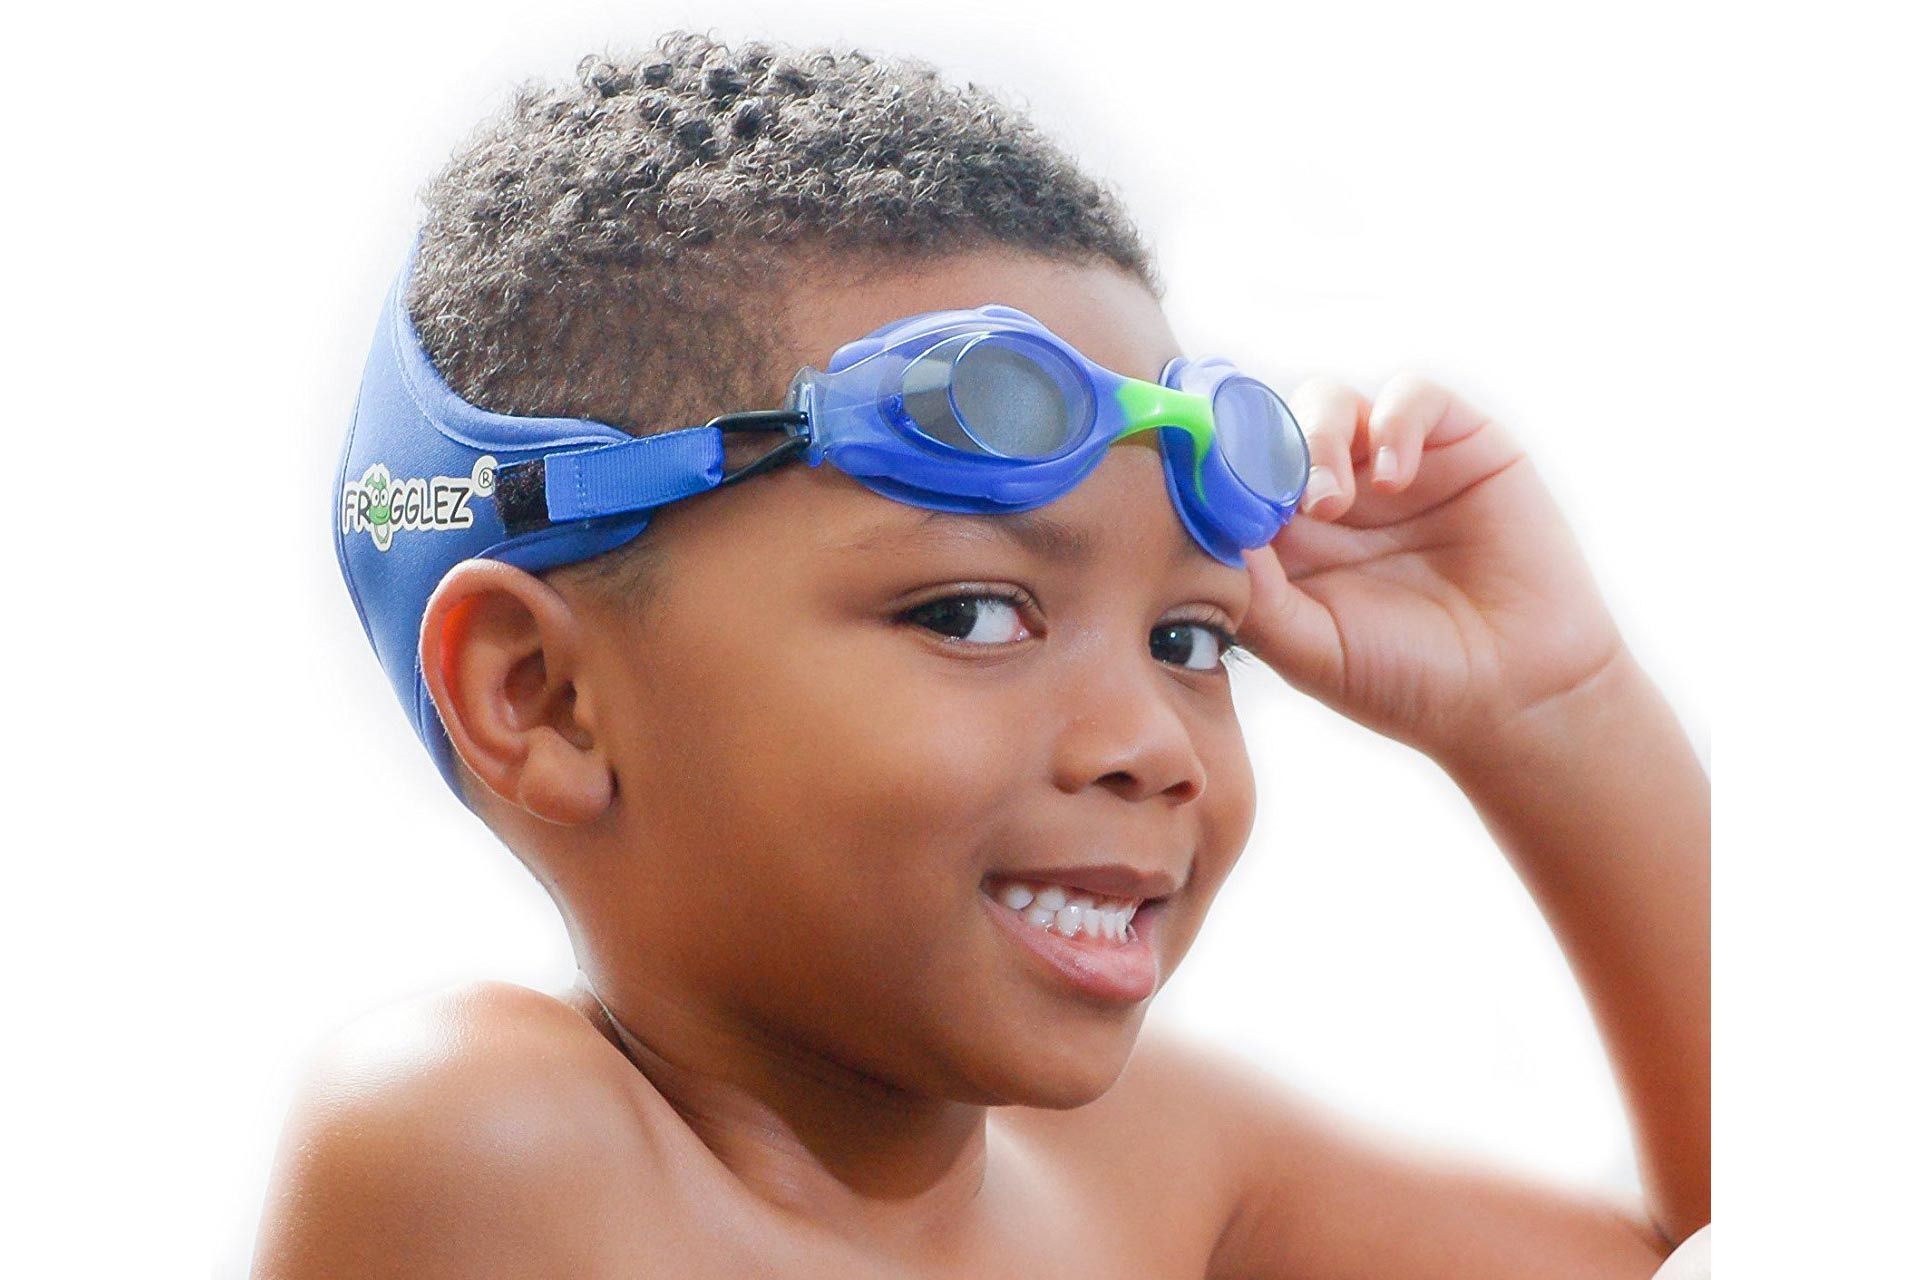 Frogglez Explorerz Jr. Kids Swimming Goggles available on Amazon